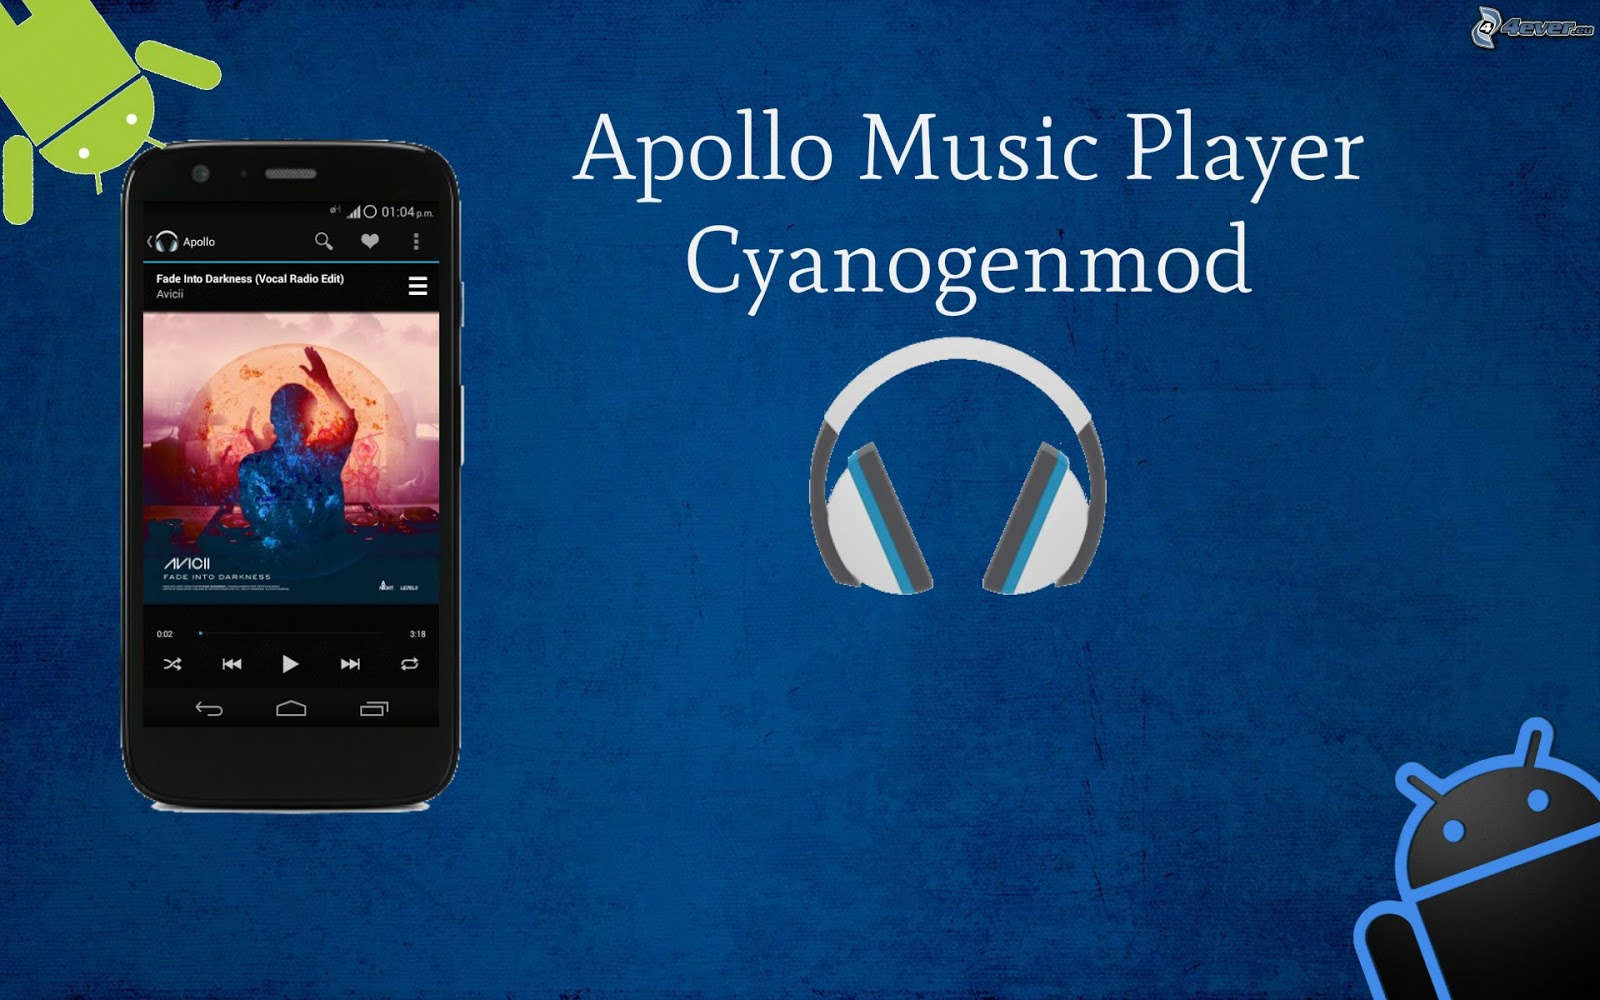 Download Sony's Walkman (Music) Music Player and CM's Music